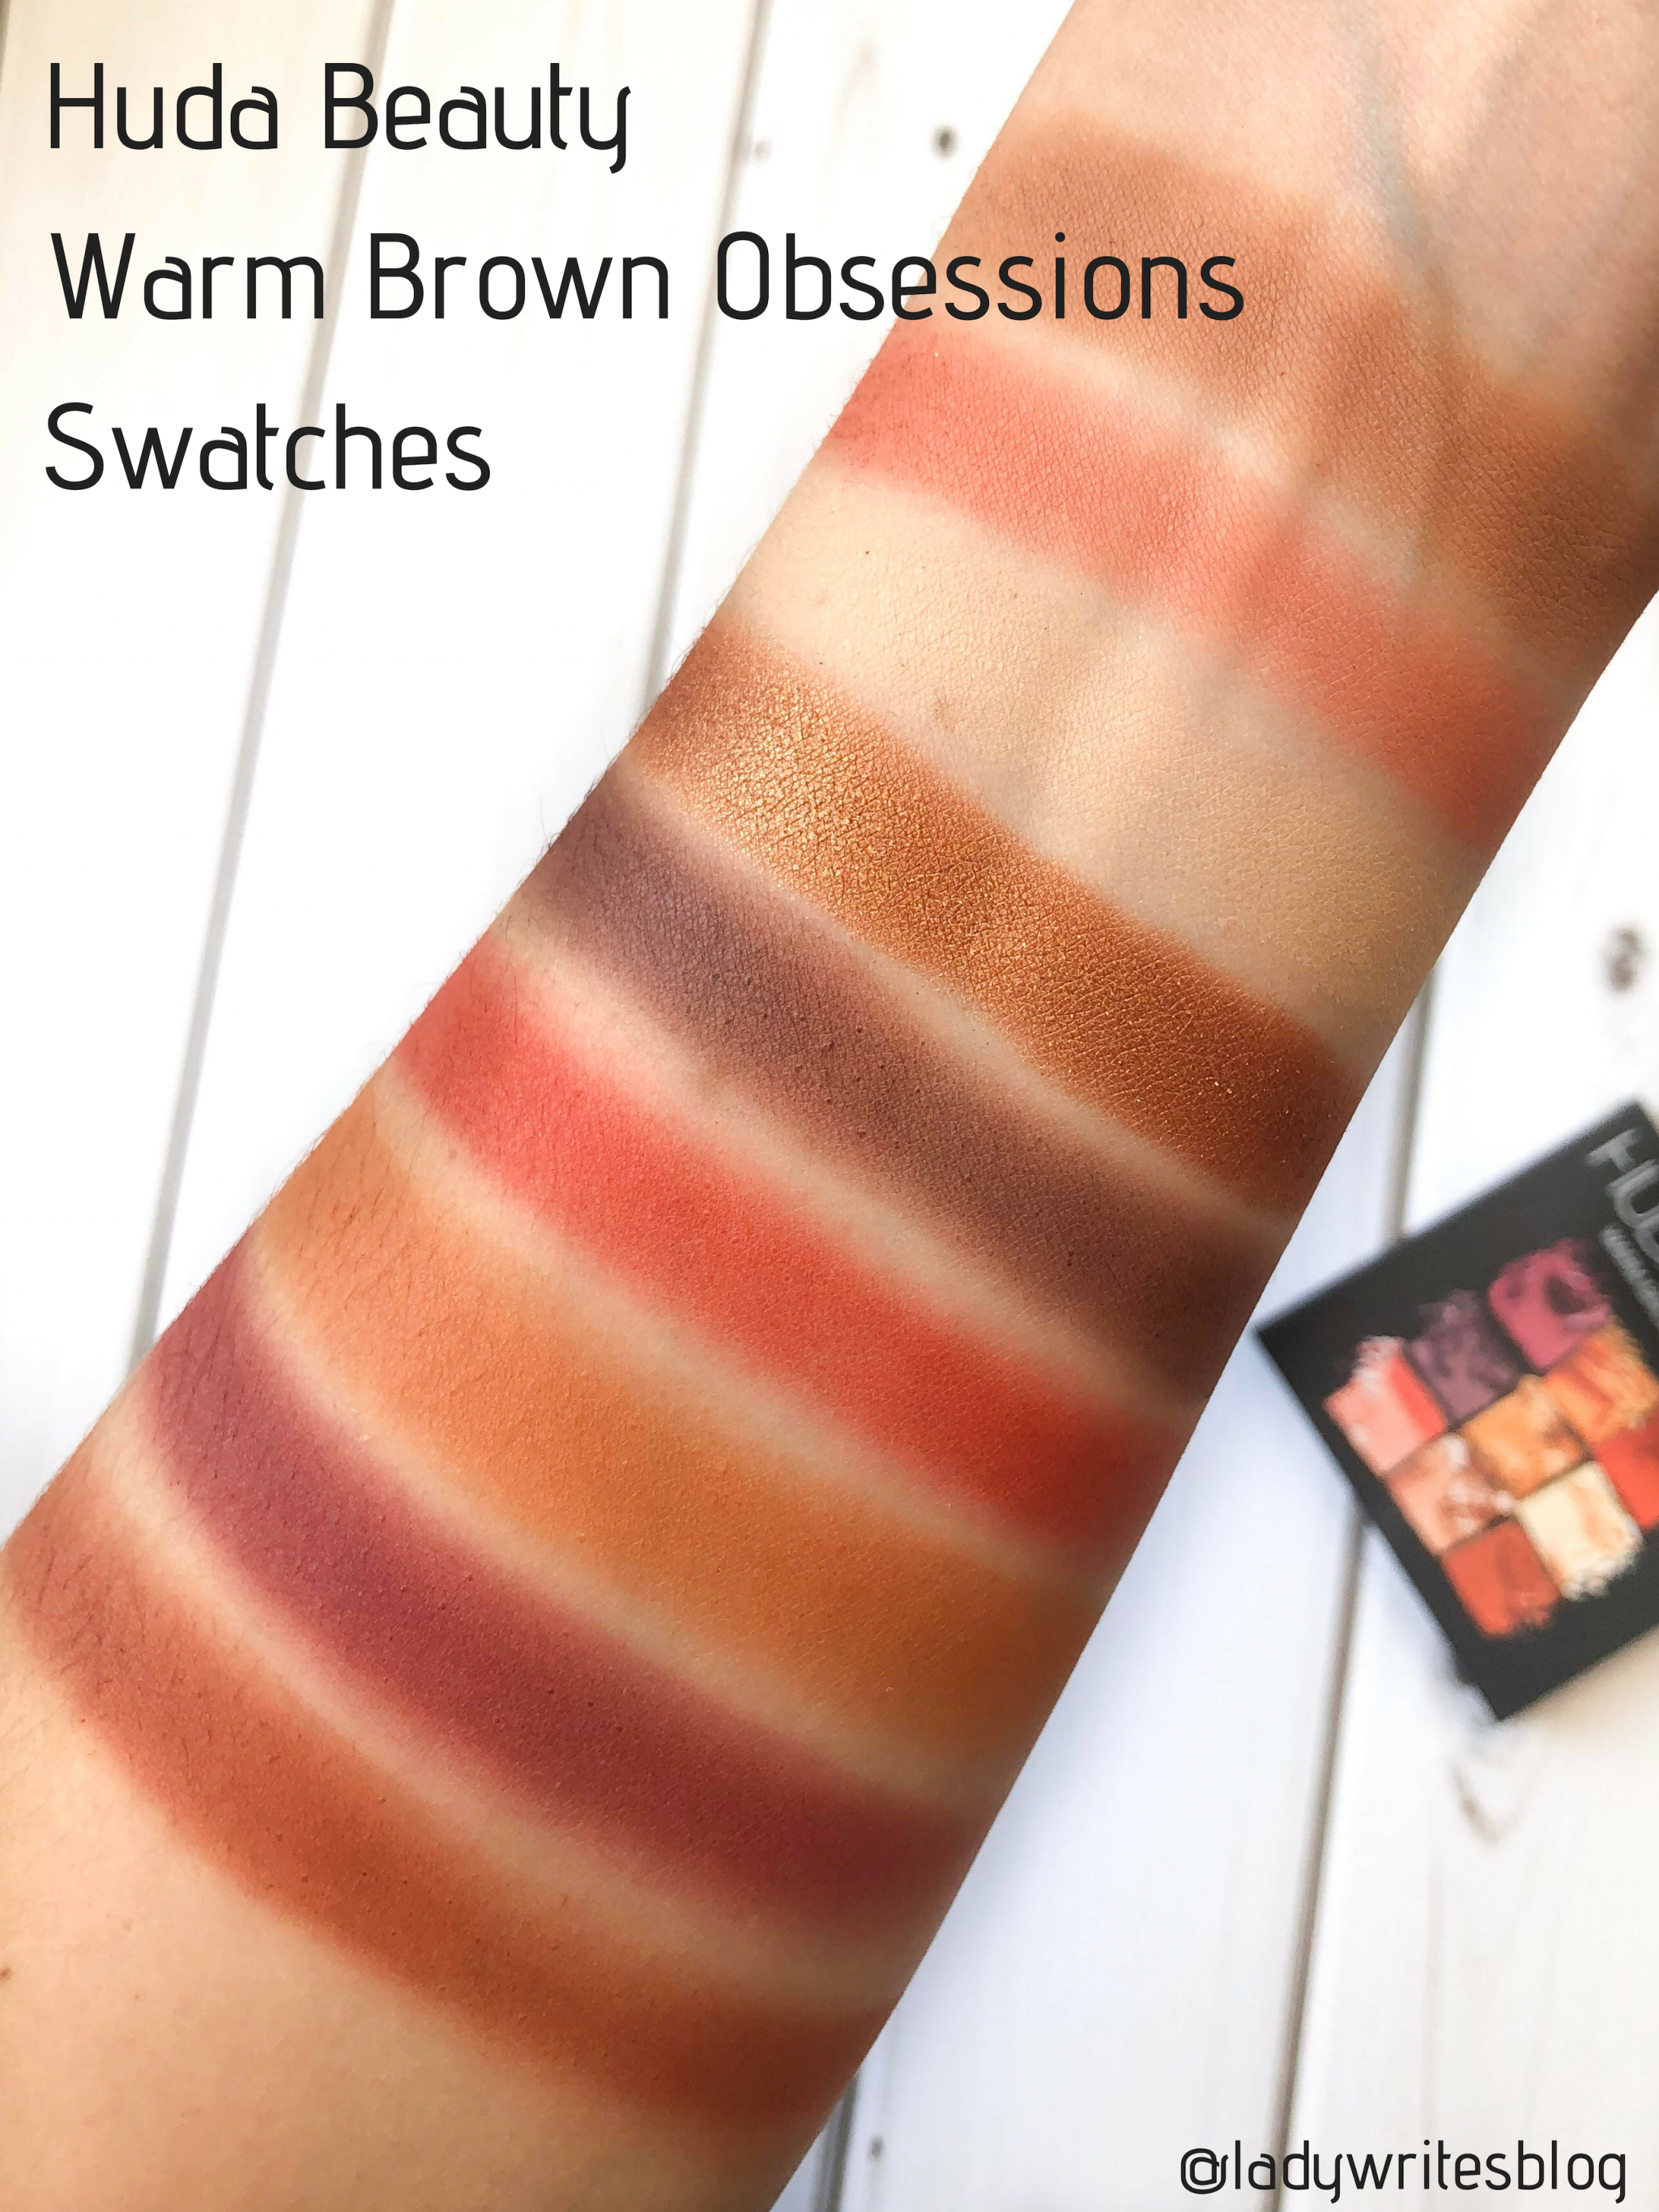 Huda Beauty Warm Brown Obsessions Swatches